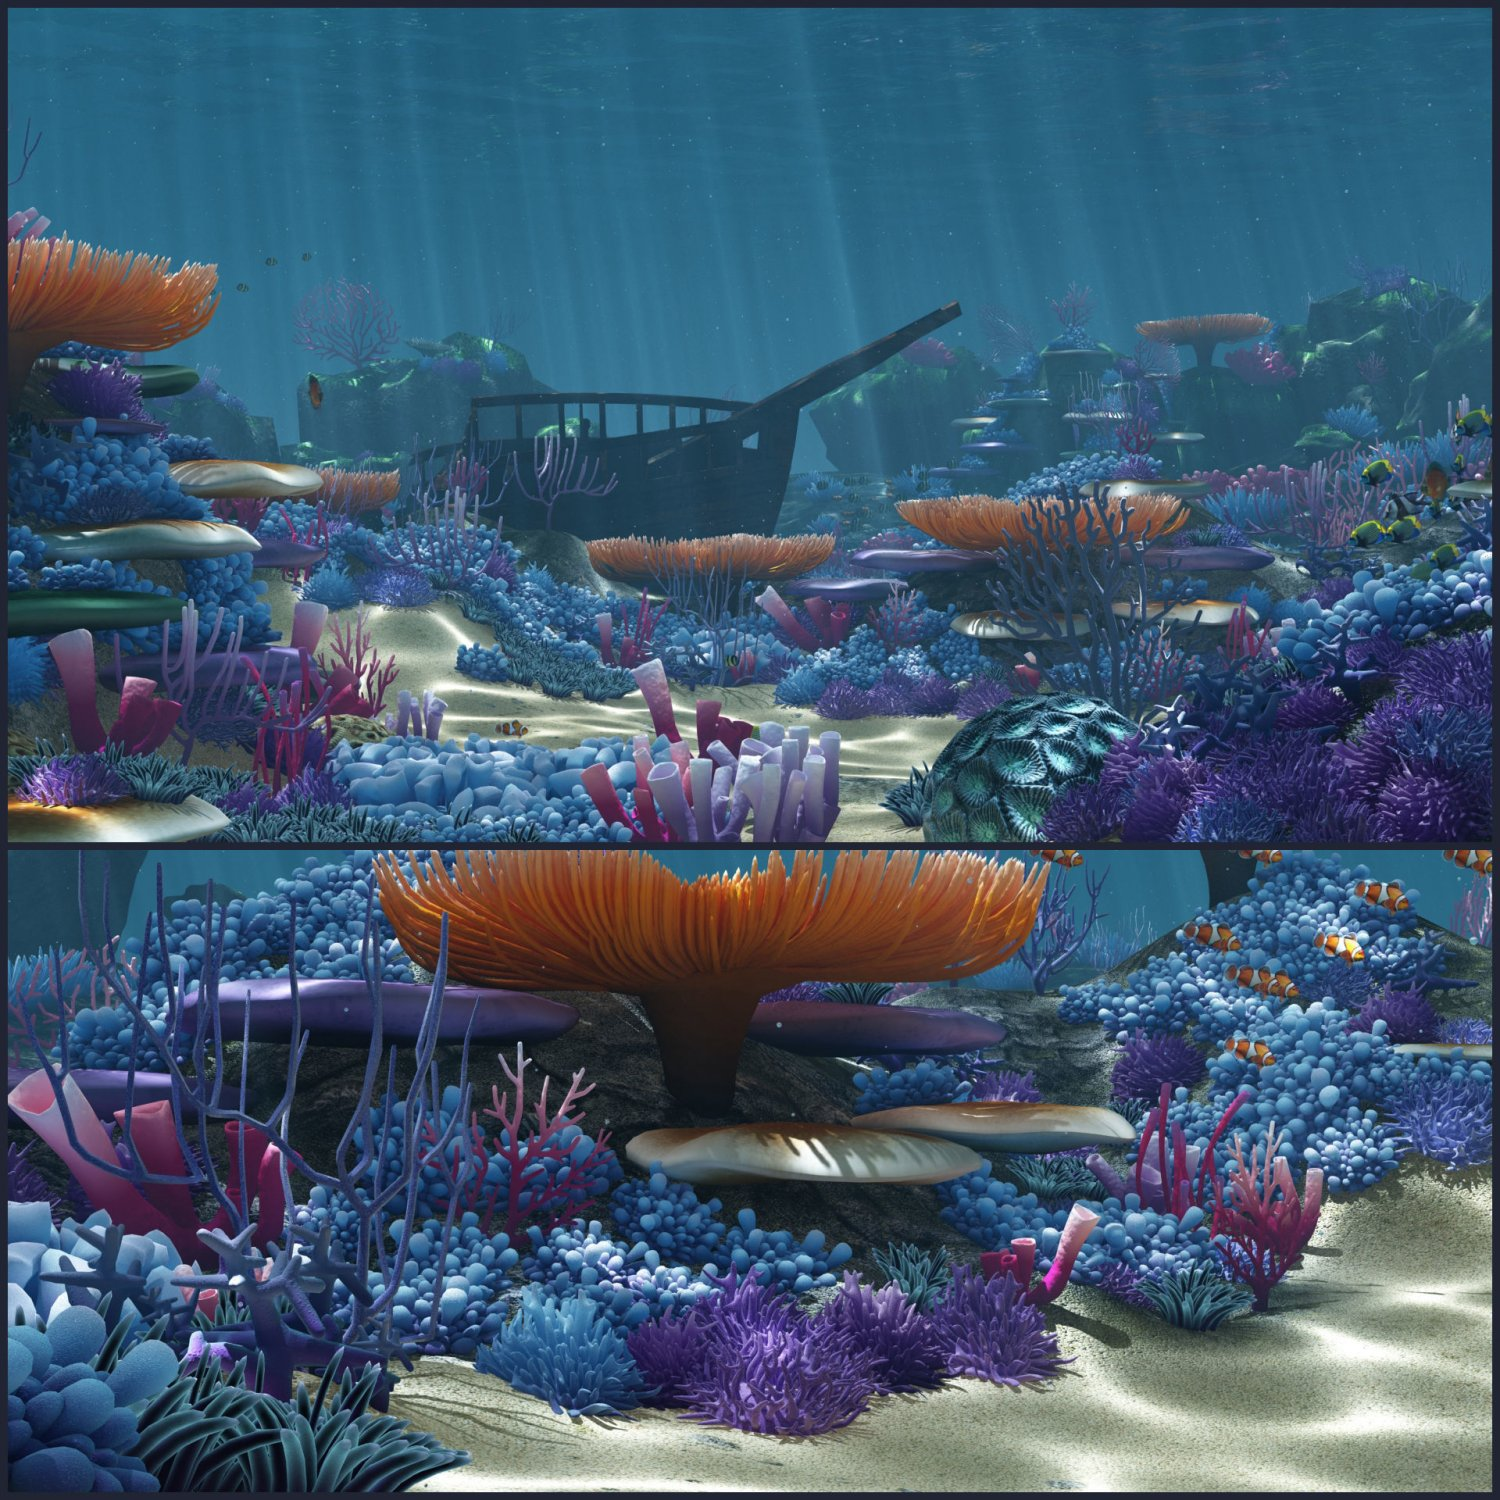 ocean floor coral reefs cartoon underwater 3dモデル in 景観 3dexport